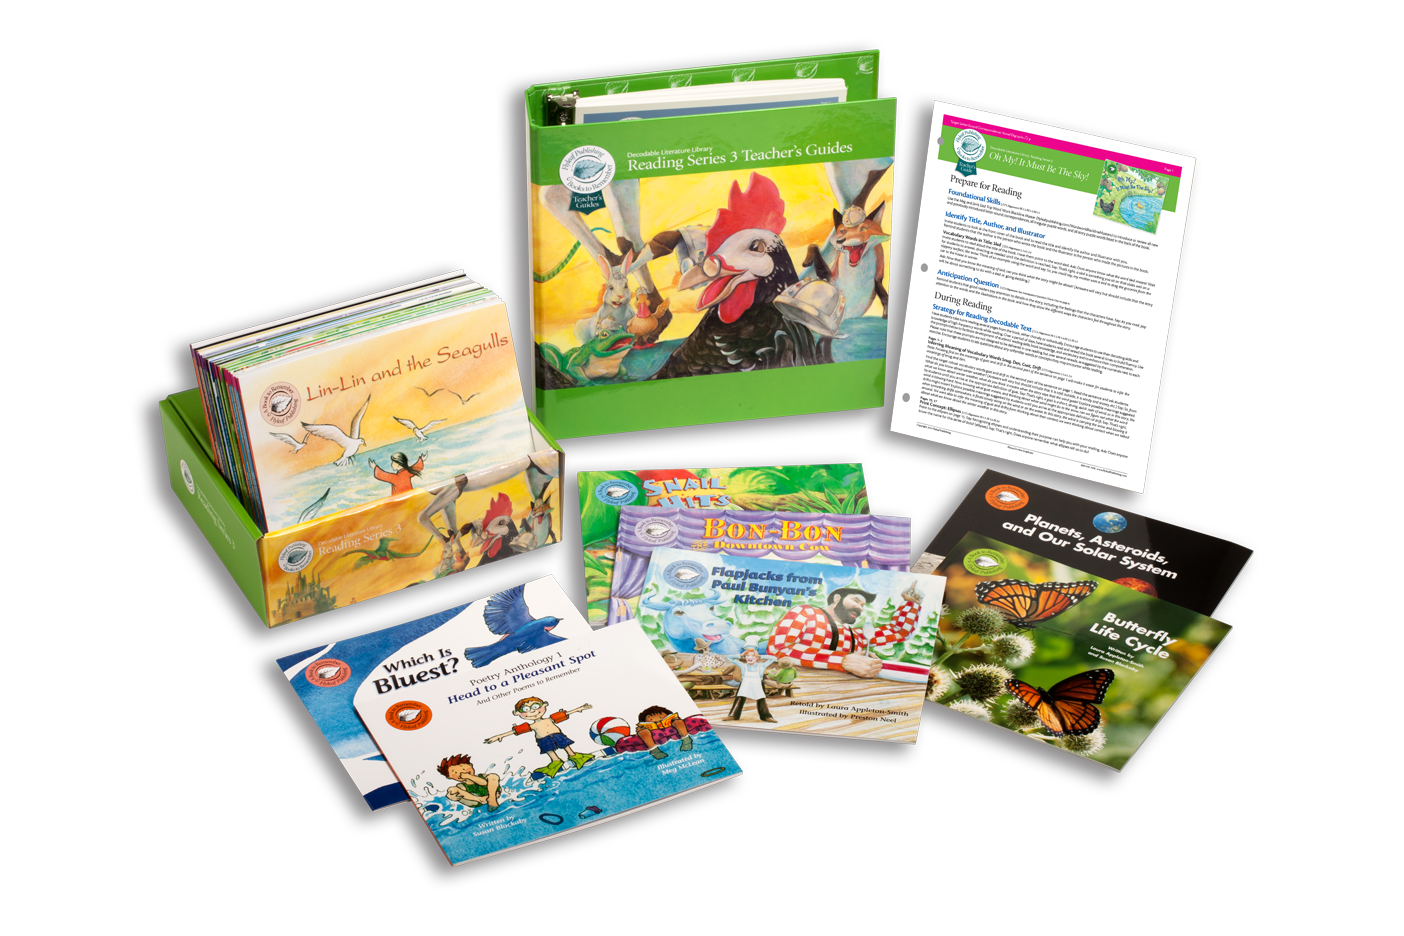 Reading Series Three Classroom Set with decodable books and teacher's guides